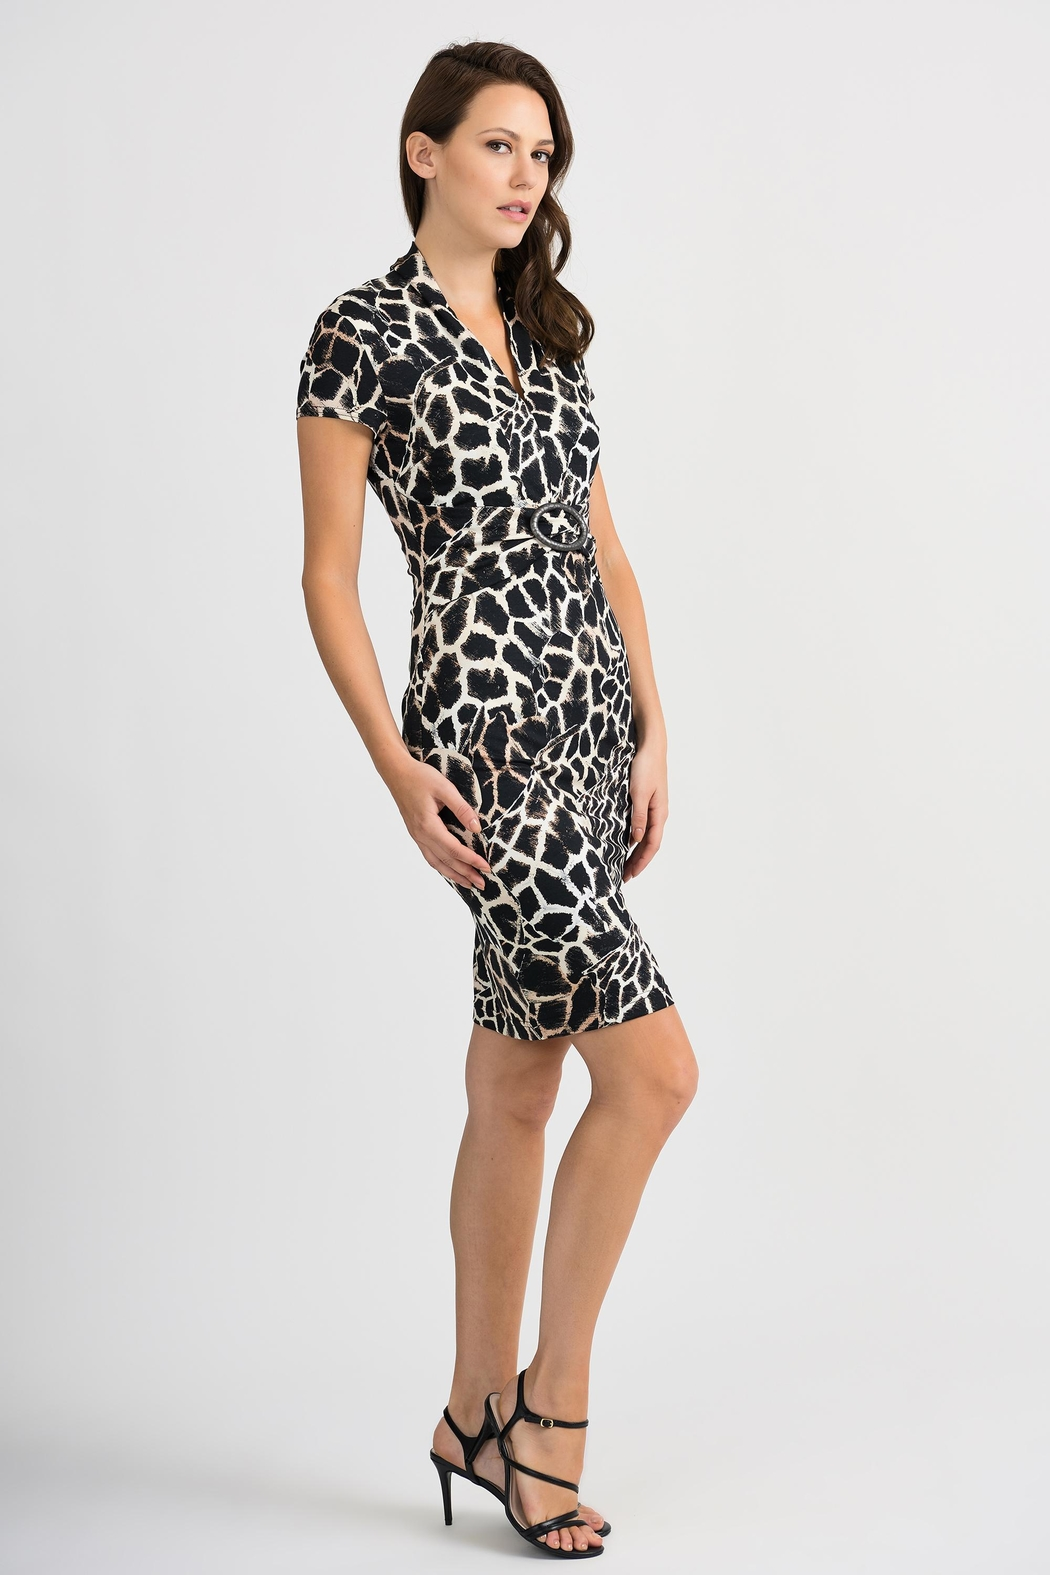 Joseph Ribkoff Giraffe Patterned Dress - Front Full Image